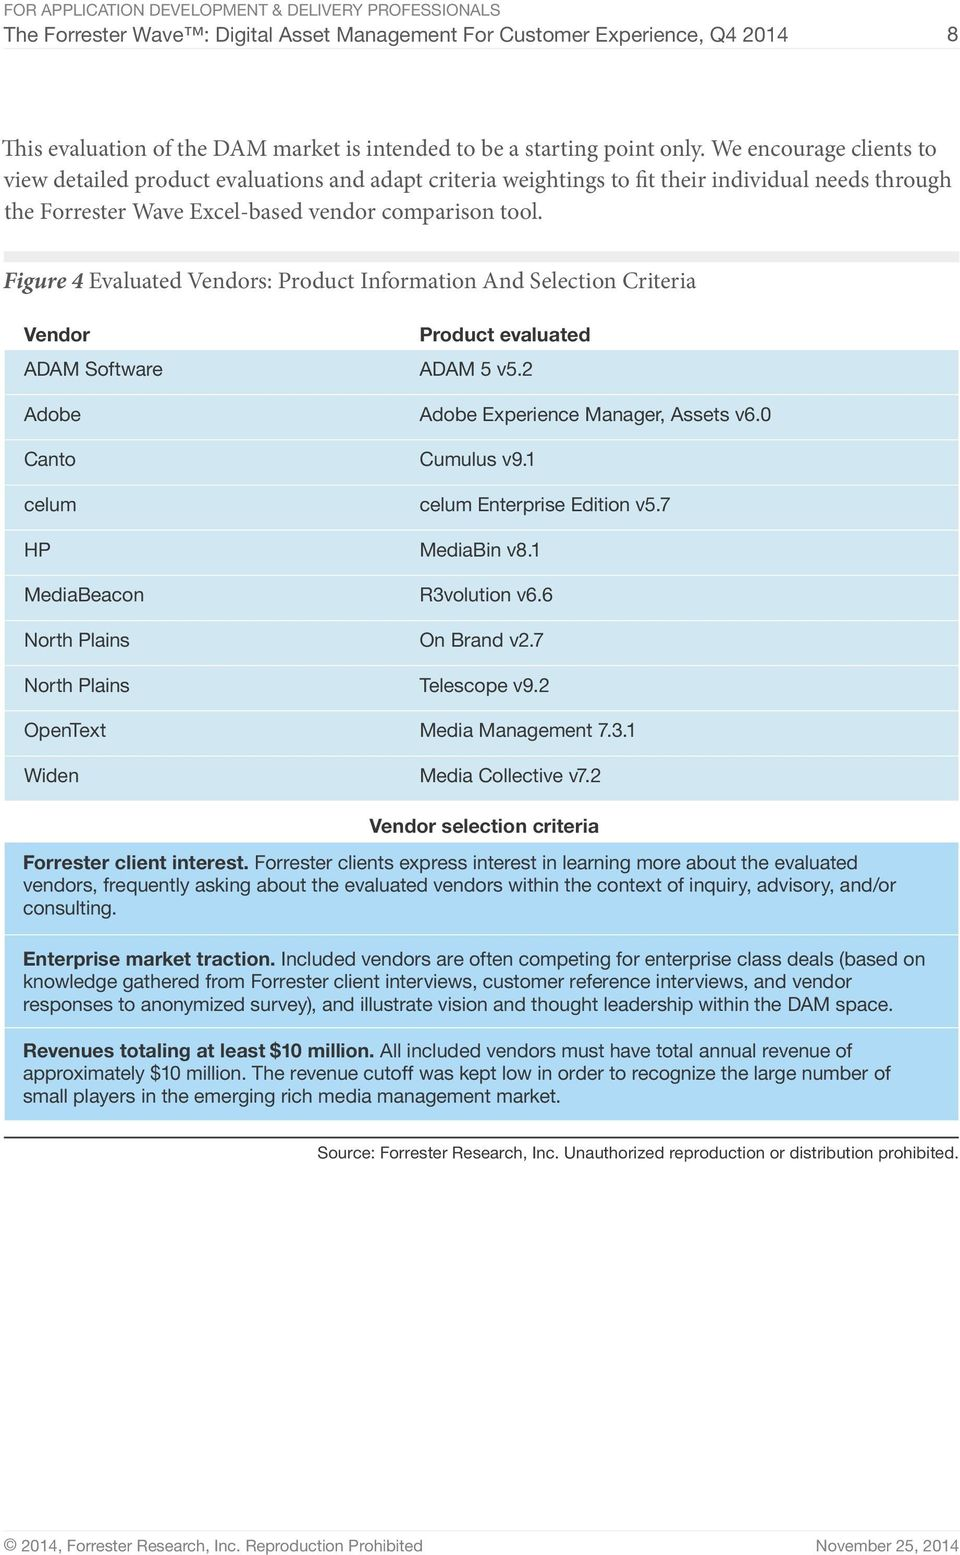 Figure 4 Evaluated Vendors: Product Information And Selection Criteria Vendor ADAM Software Adobe Canto celum HP MediaBeacon North Plains North Plains OpenText Widen Product evaluated ADAM 5 v5.